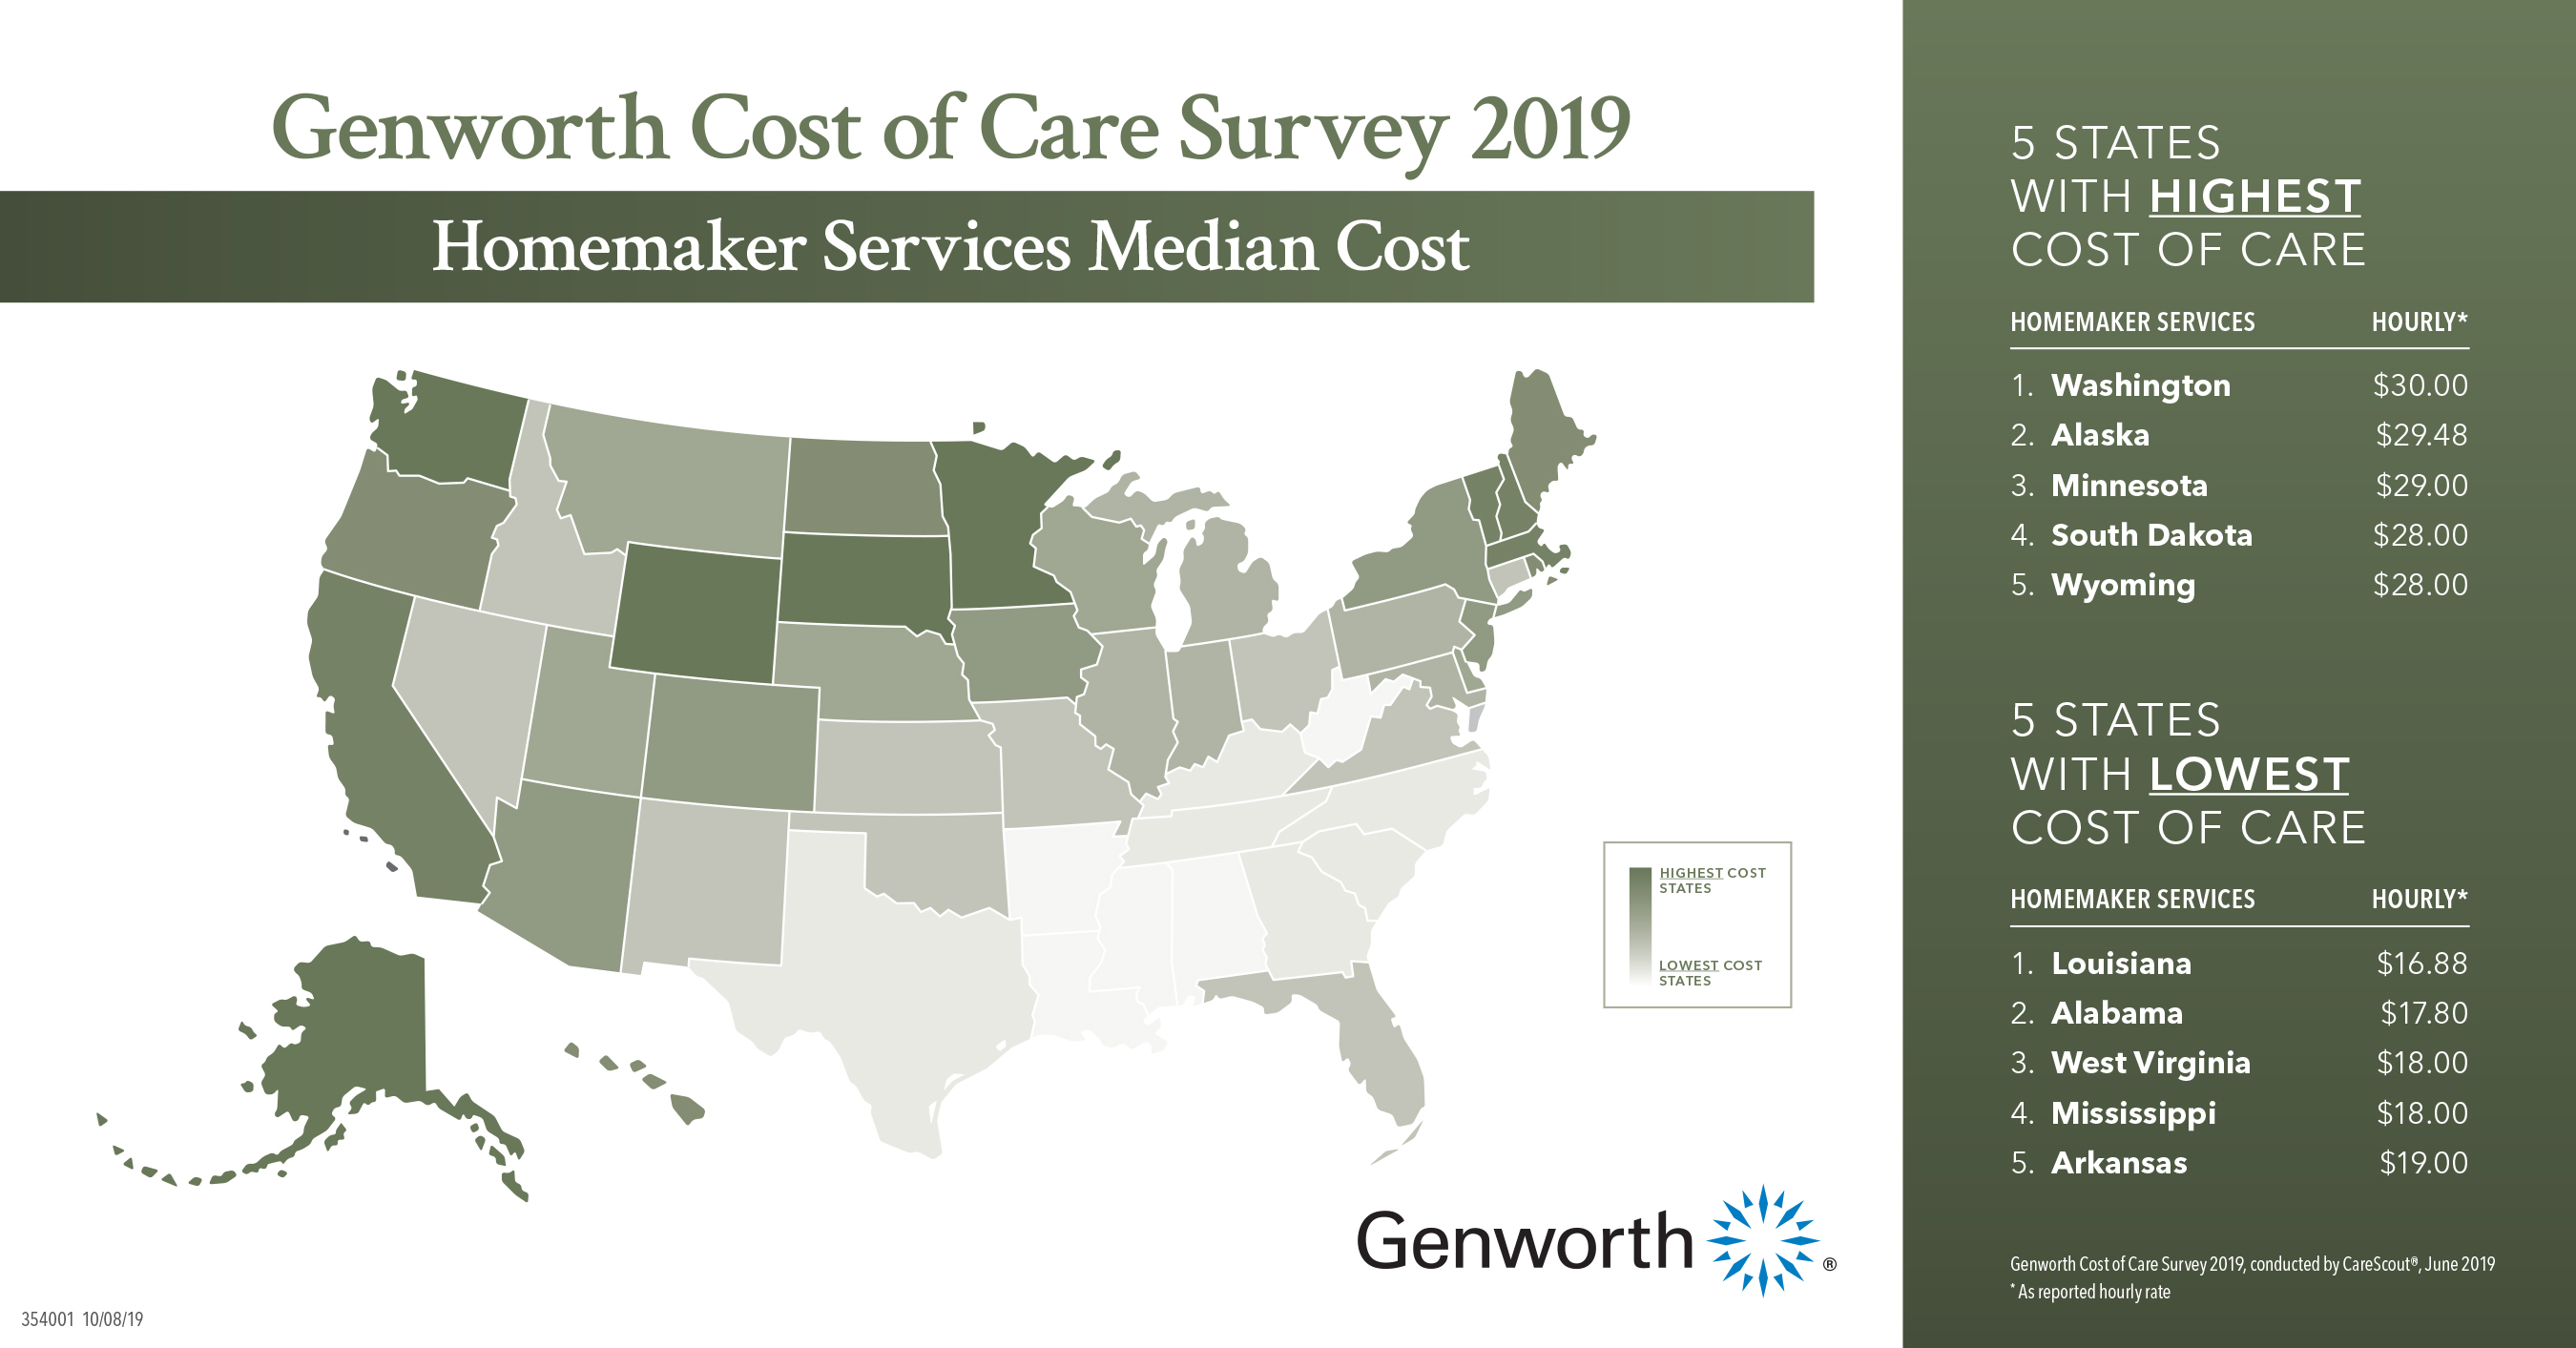 Homemaker Services Median Cost